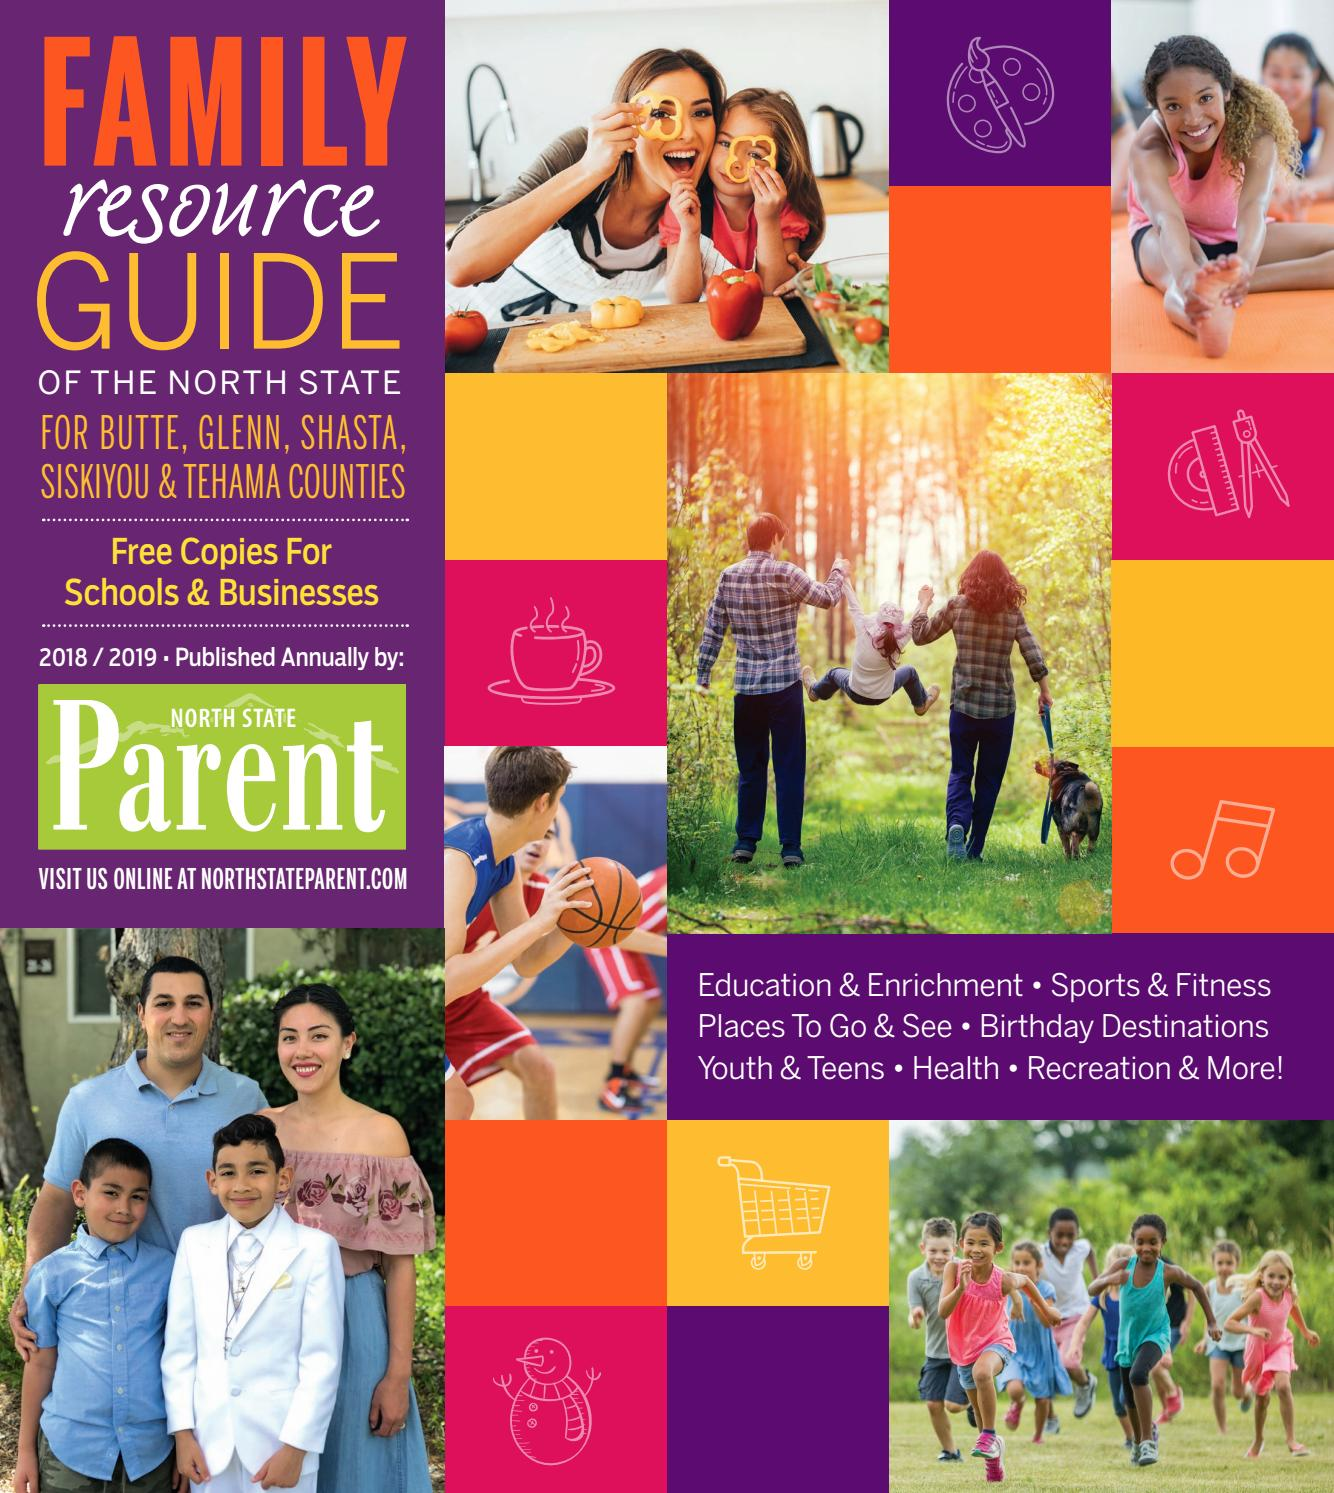 Ted Video 1602 How Childhood Trauma >> Annual Family Resource Guide By North State Parent Magazine